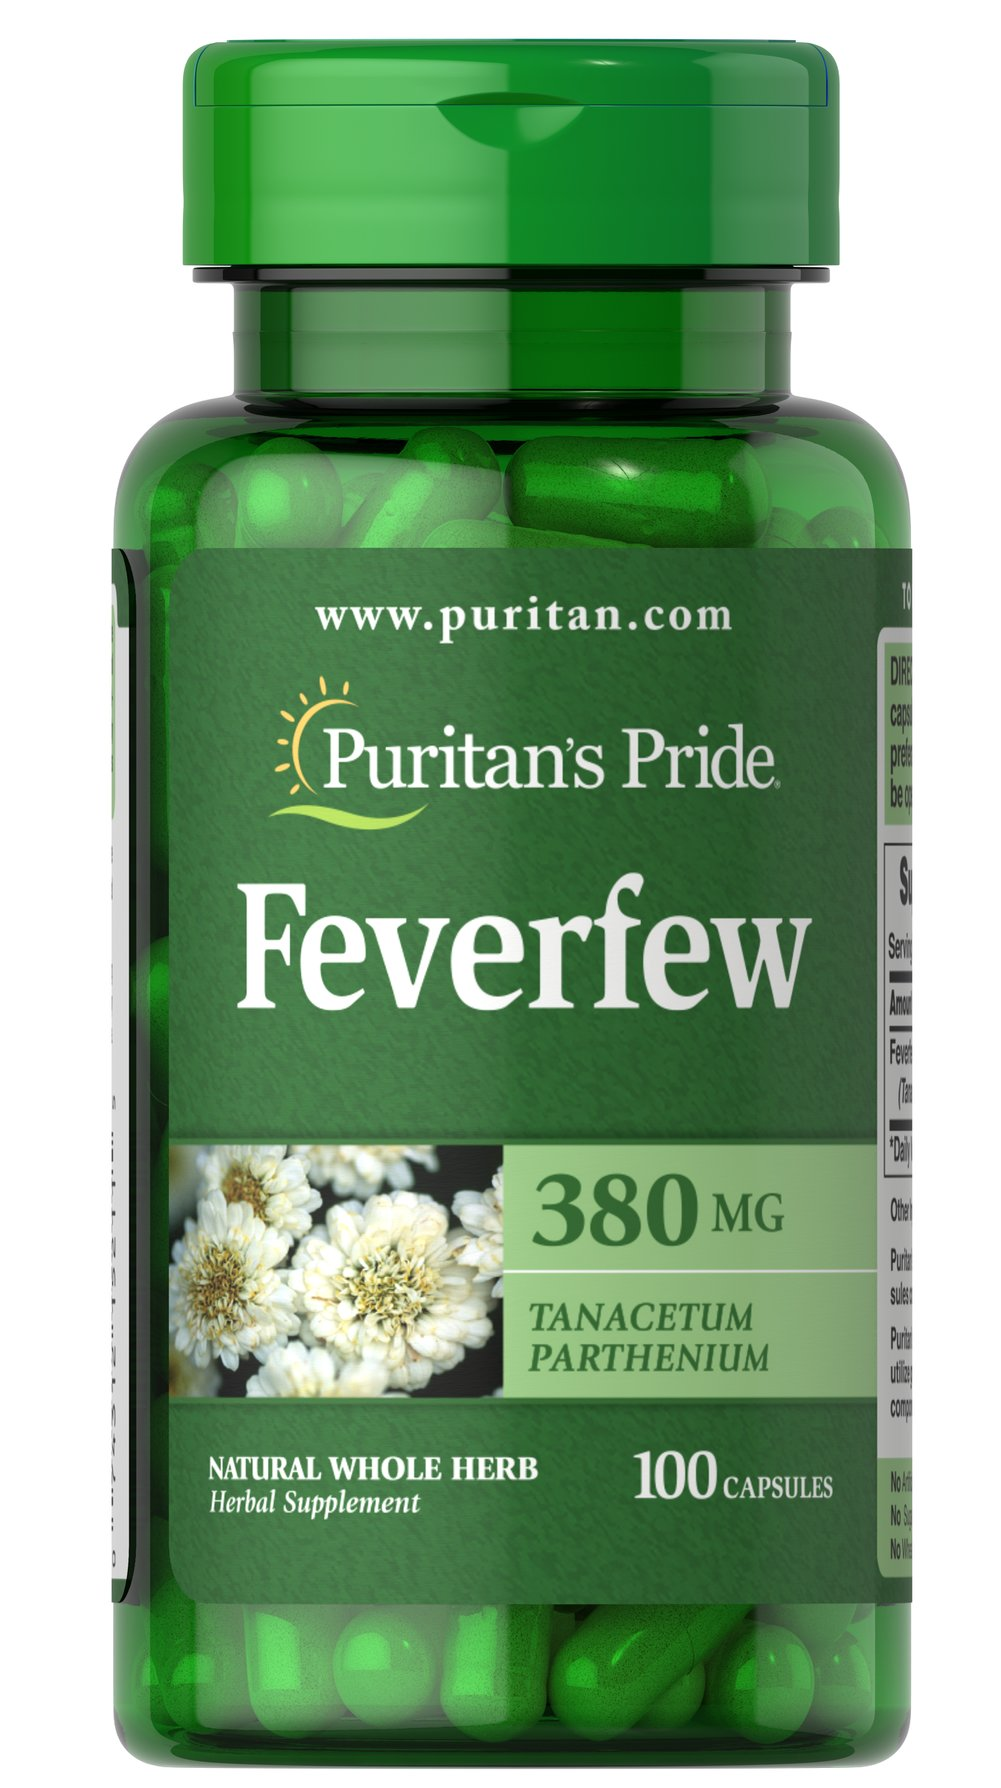 Feverfew 380 mg <p><br />Feverfew (Tanacetum parthenium) is traditionally<br />used by individuals with hectic lifestyles.**<br /><br />Puritan's Pride's preservative-free gelatin capsules<br />contain pure milled herb powder.<br /><br />Puritan's Pride's Natural Whole Herb products<br />utilize ground plant parts to provide the natural<br />components found in nature.</p> 100 Capsules 380 mg $8.99